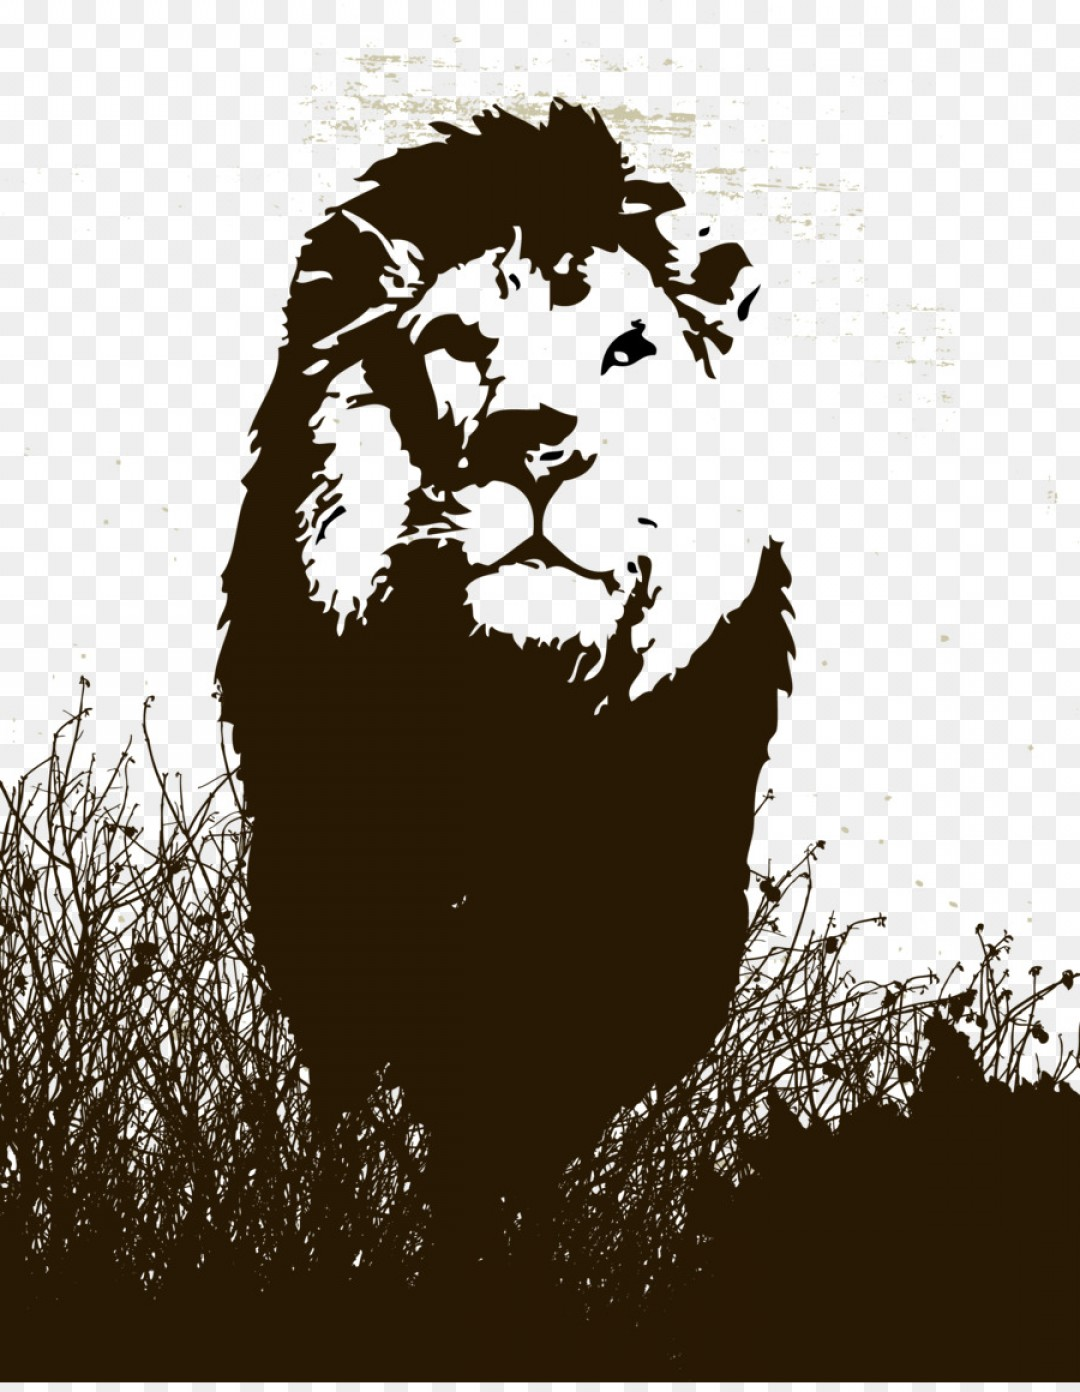 Nala Vector: Png Maasai Mara Lion Wall Decal Sticker Vector Lions